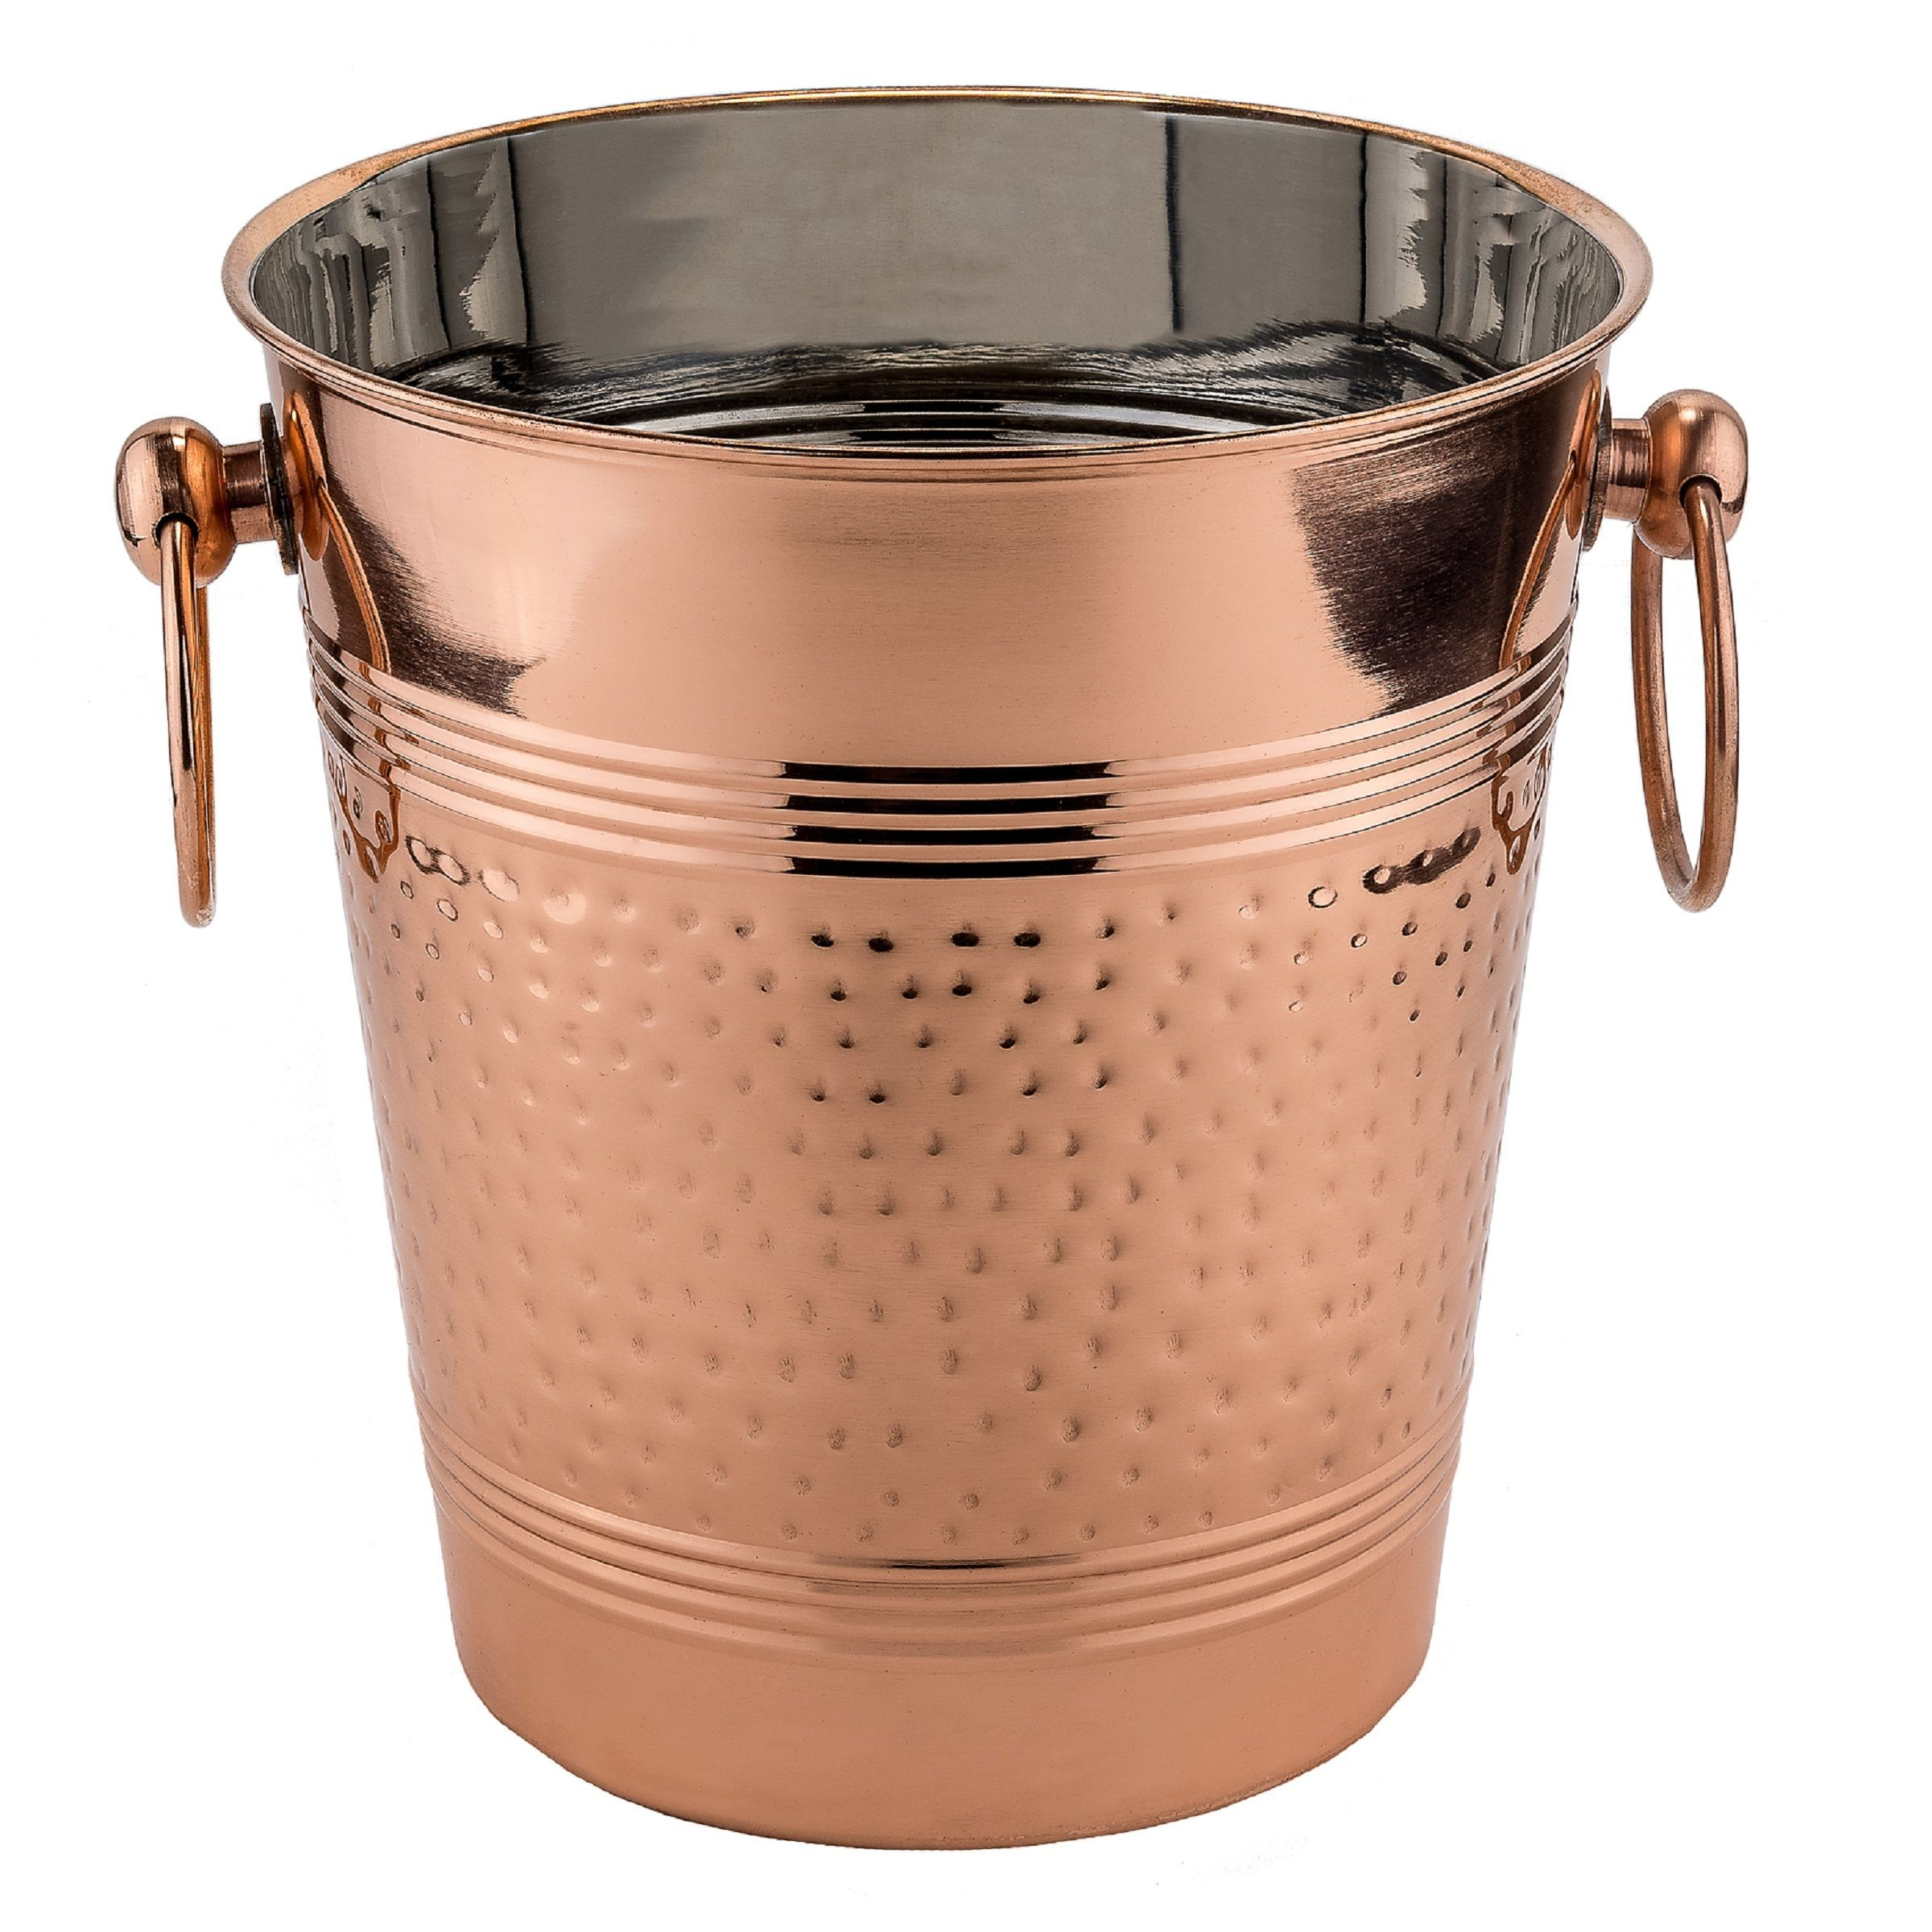 Old Dutch International 1104 Fez Hammered Decor Copper Wine Cooler, 5 1/4 Qt.